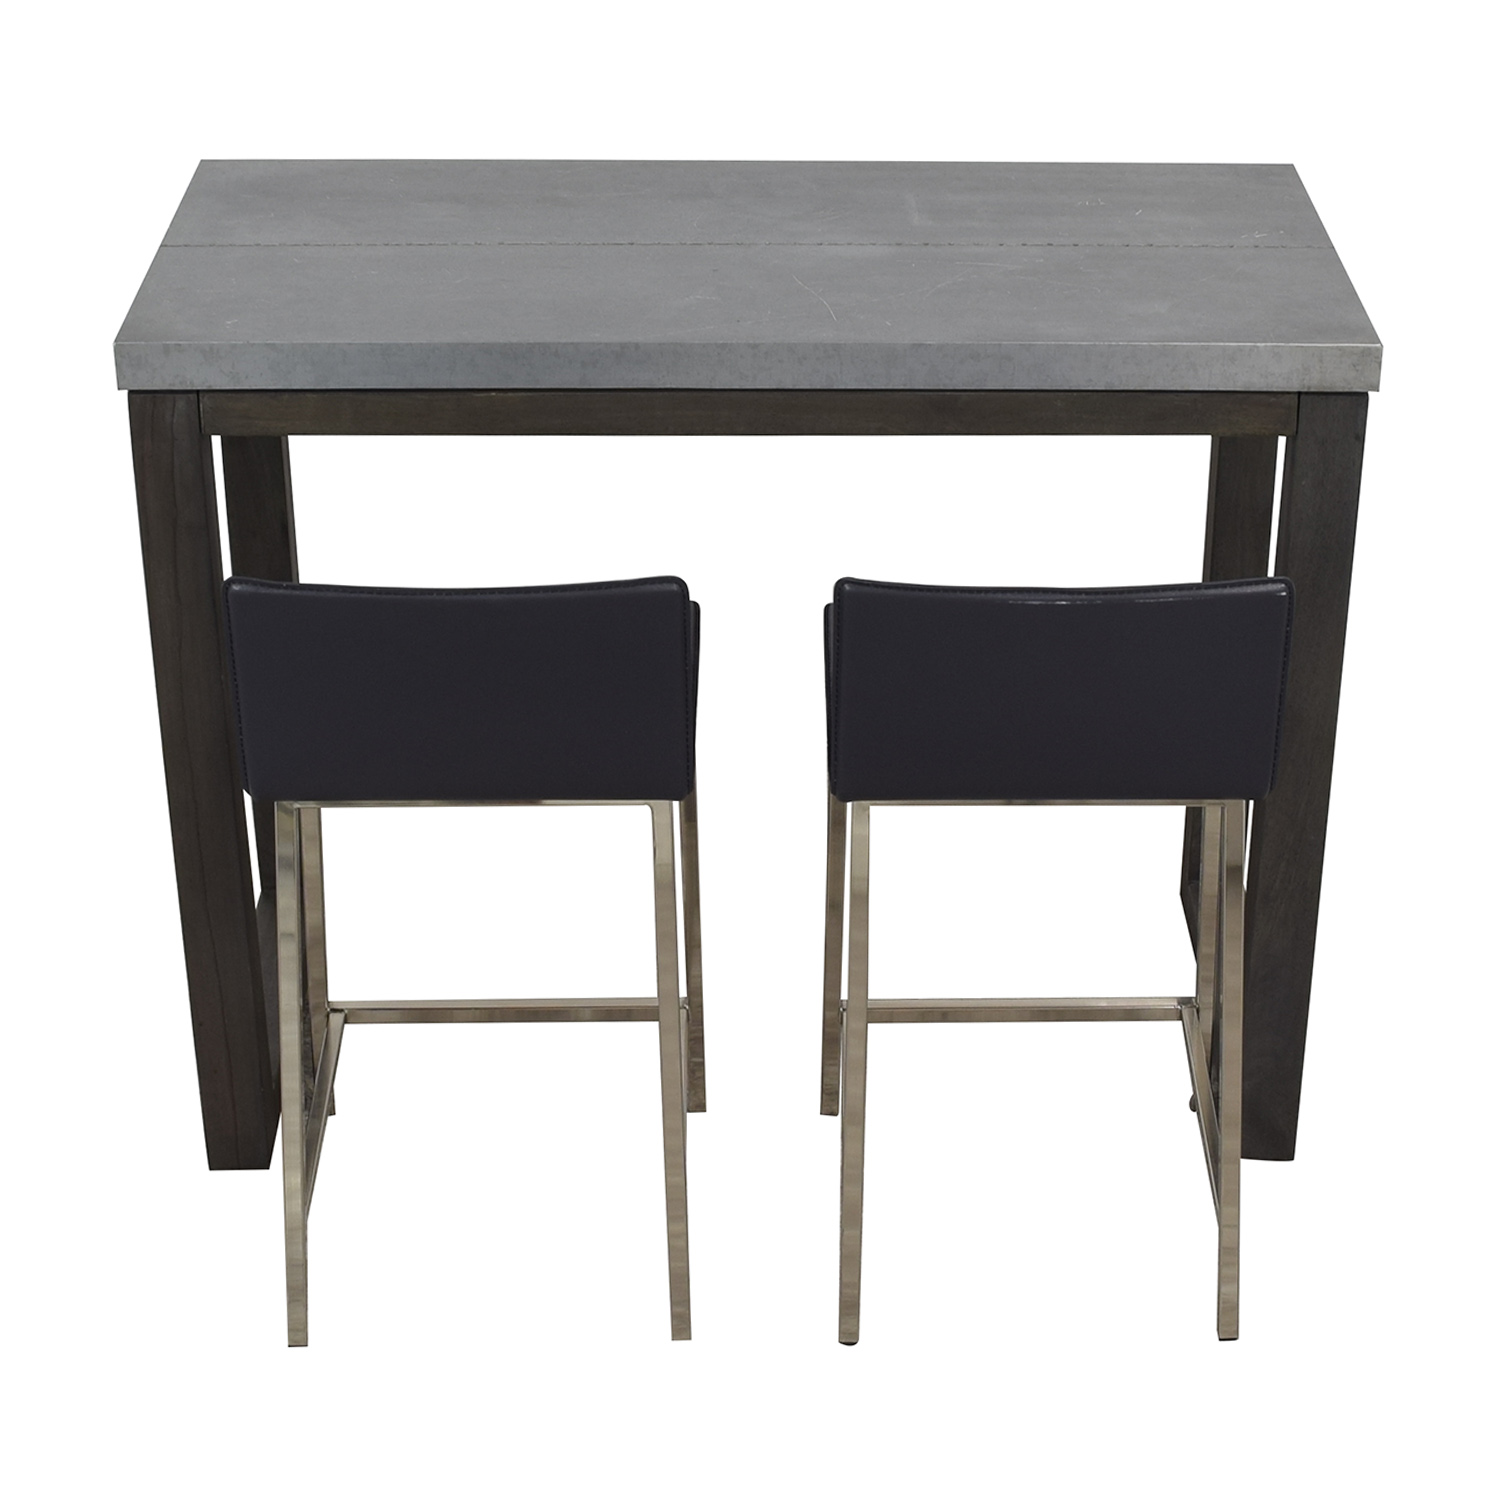 CB2 CB2 Stern Counter Table with Two Stools Tables